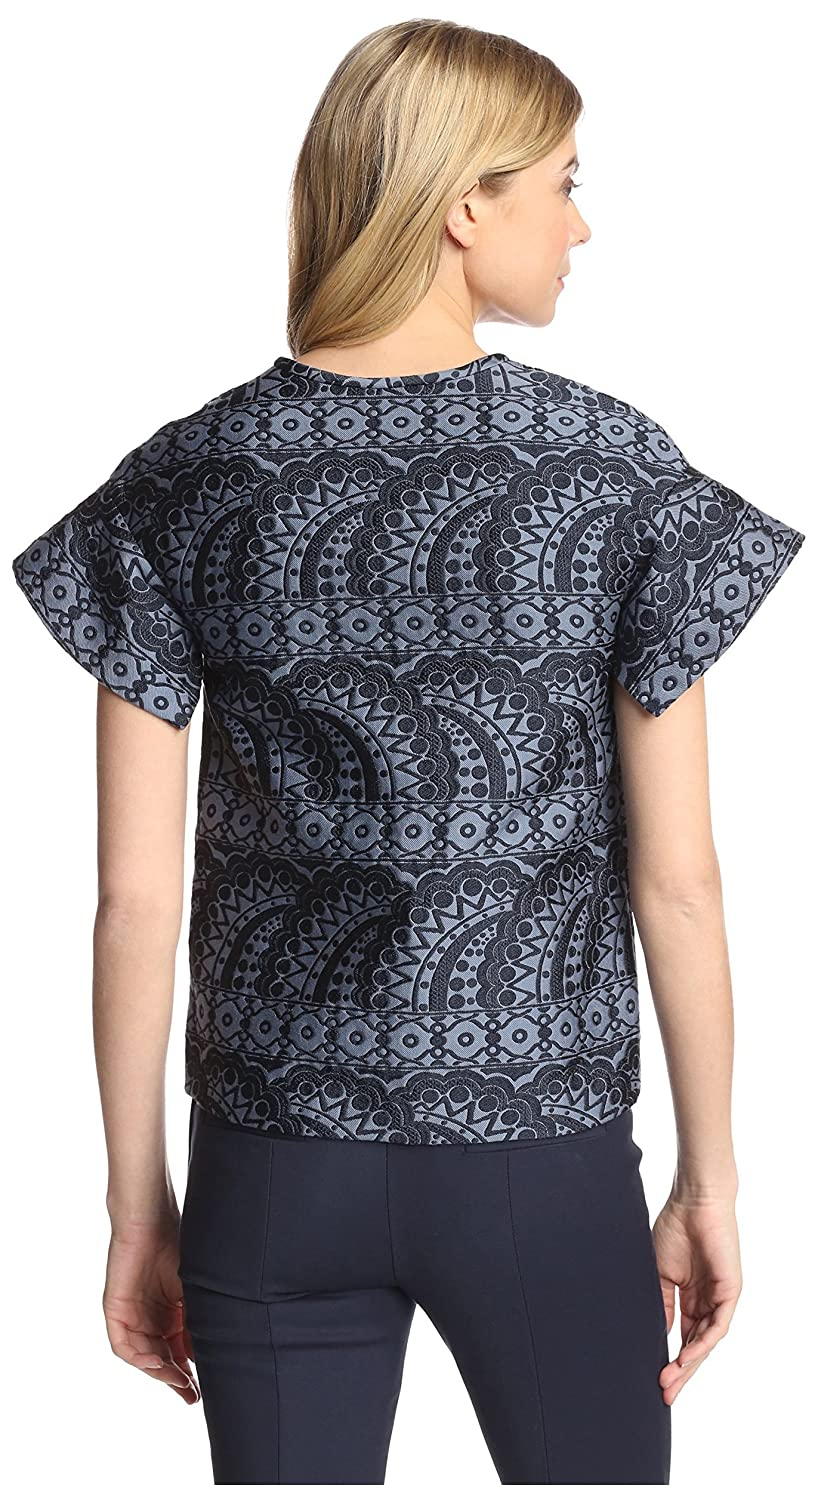 6ef981afd2a Amazon.com: Cynthia Rowley Women's Jacquard Flutter Sleeve Top, Navy, M:  Clothing